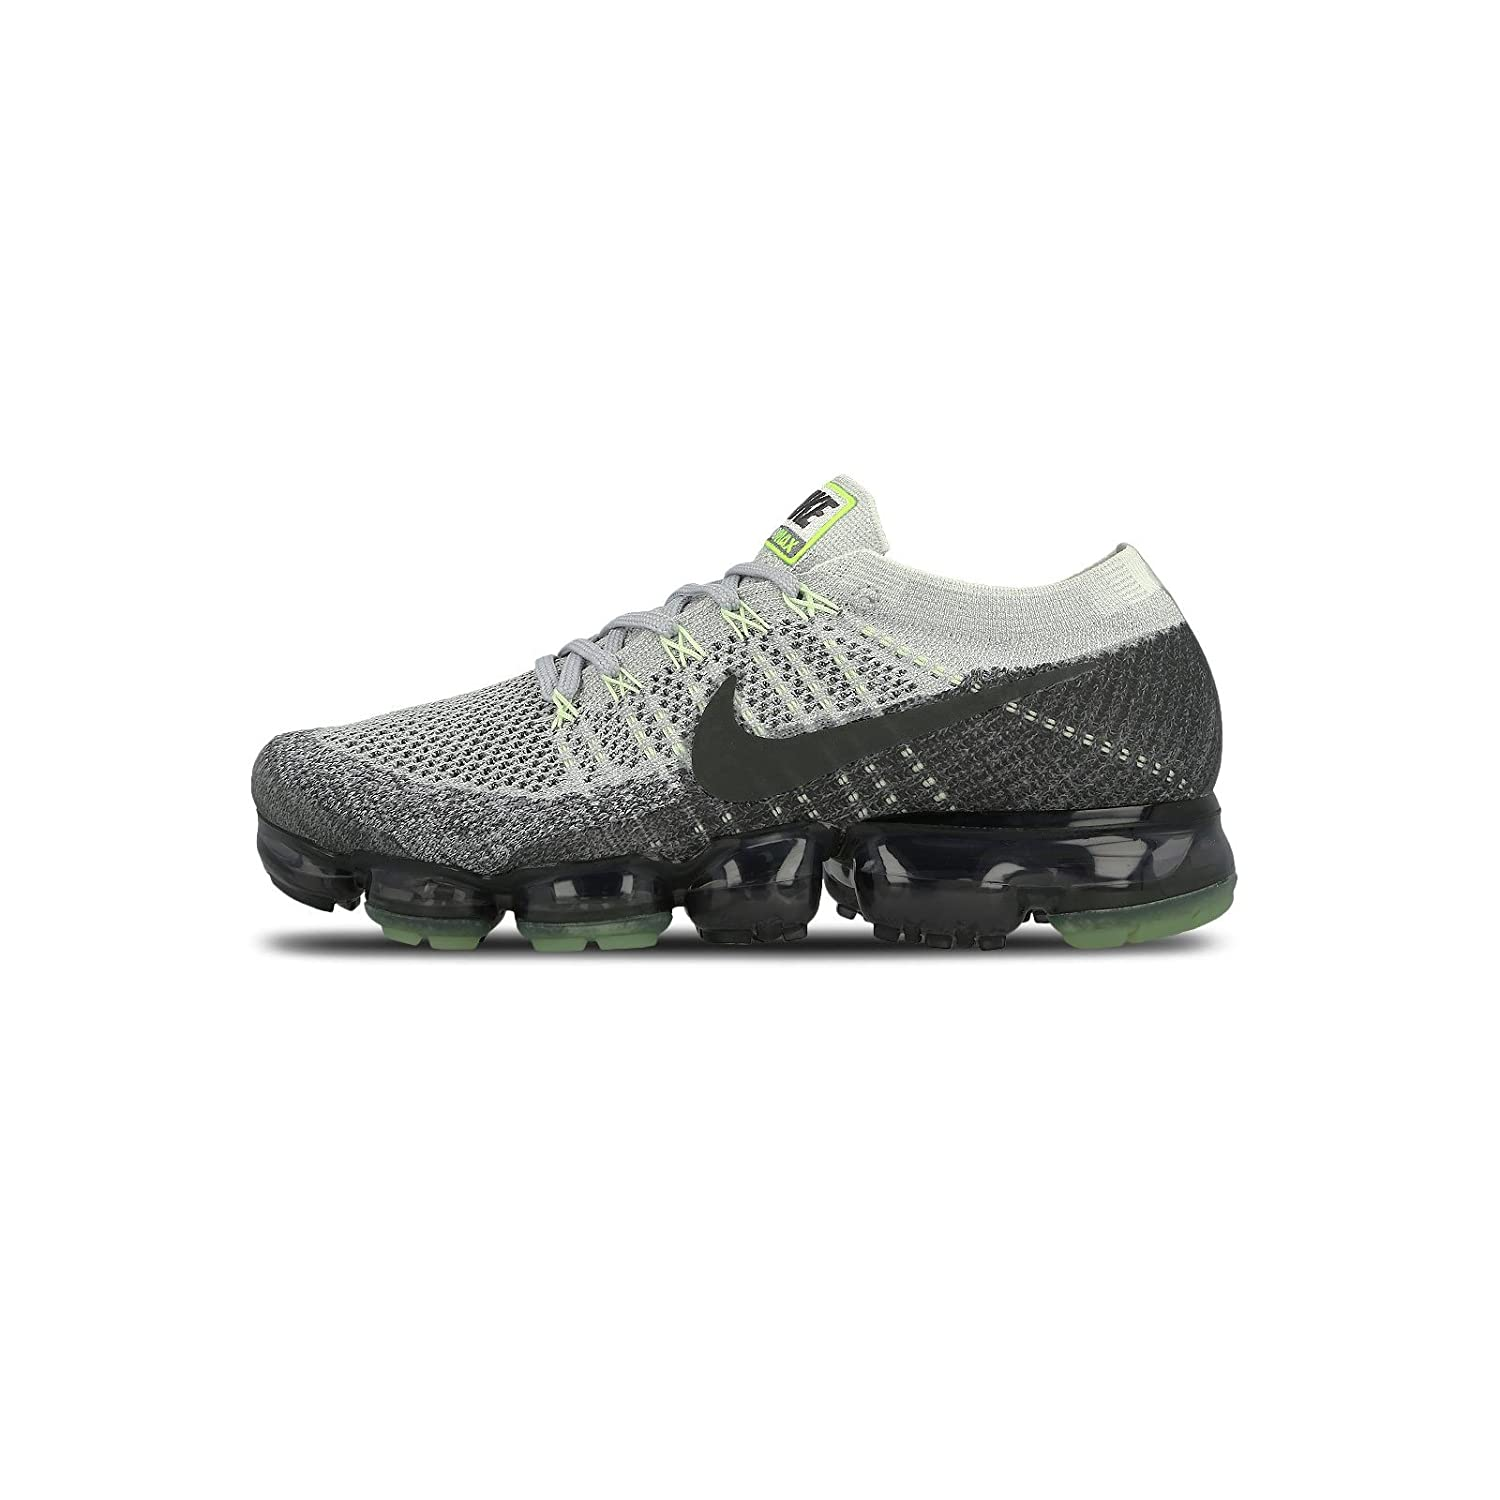 competitive price 02907 b4e78 Nike Air Vapormax Flyknit E Mens 922915-002 Size 12